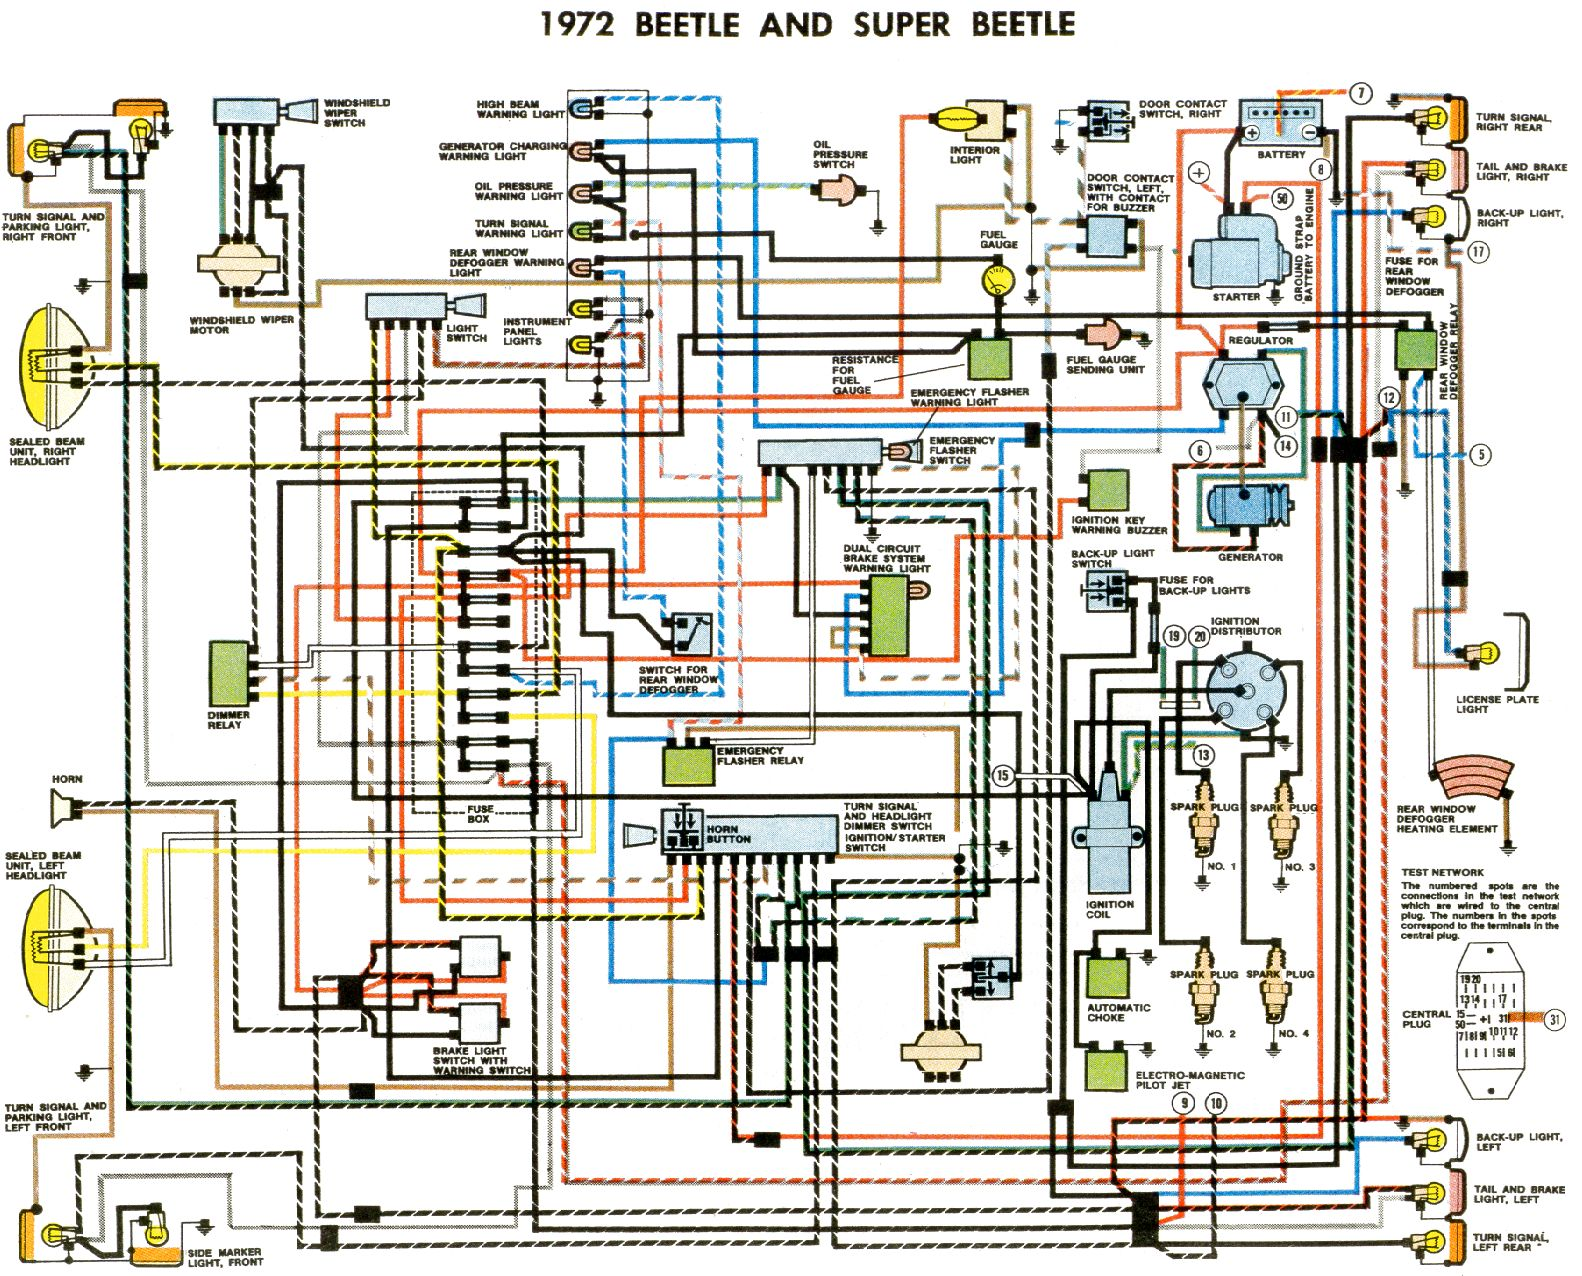 Volkswagen Beetle Fuse Box Diagram furthermore Chevelle Sbc 350 Ignition Wiring moreover Venkataraju project moreover 72 Super Beetle Alternator Wiring Diagram additionally 290108 Anyone Care Validate My Mustang Headlight Switch Wiring. on 1969 vw beetle wiring diagram